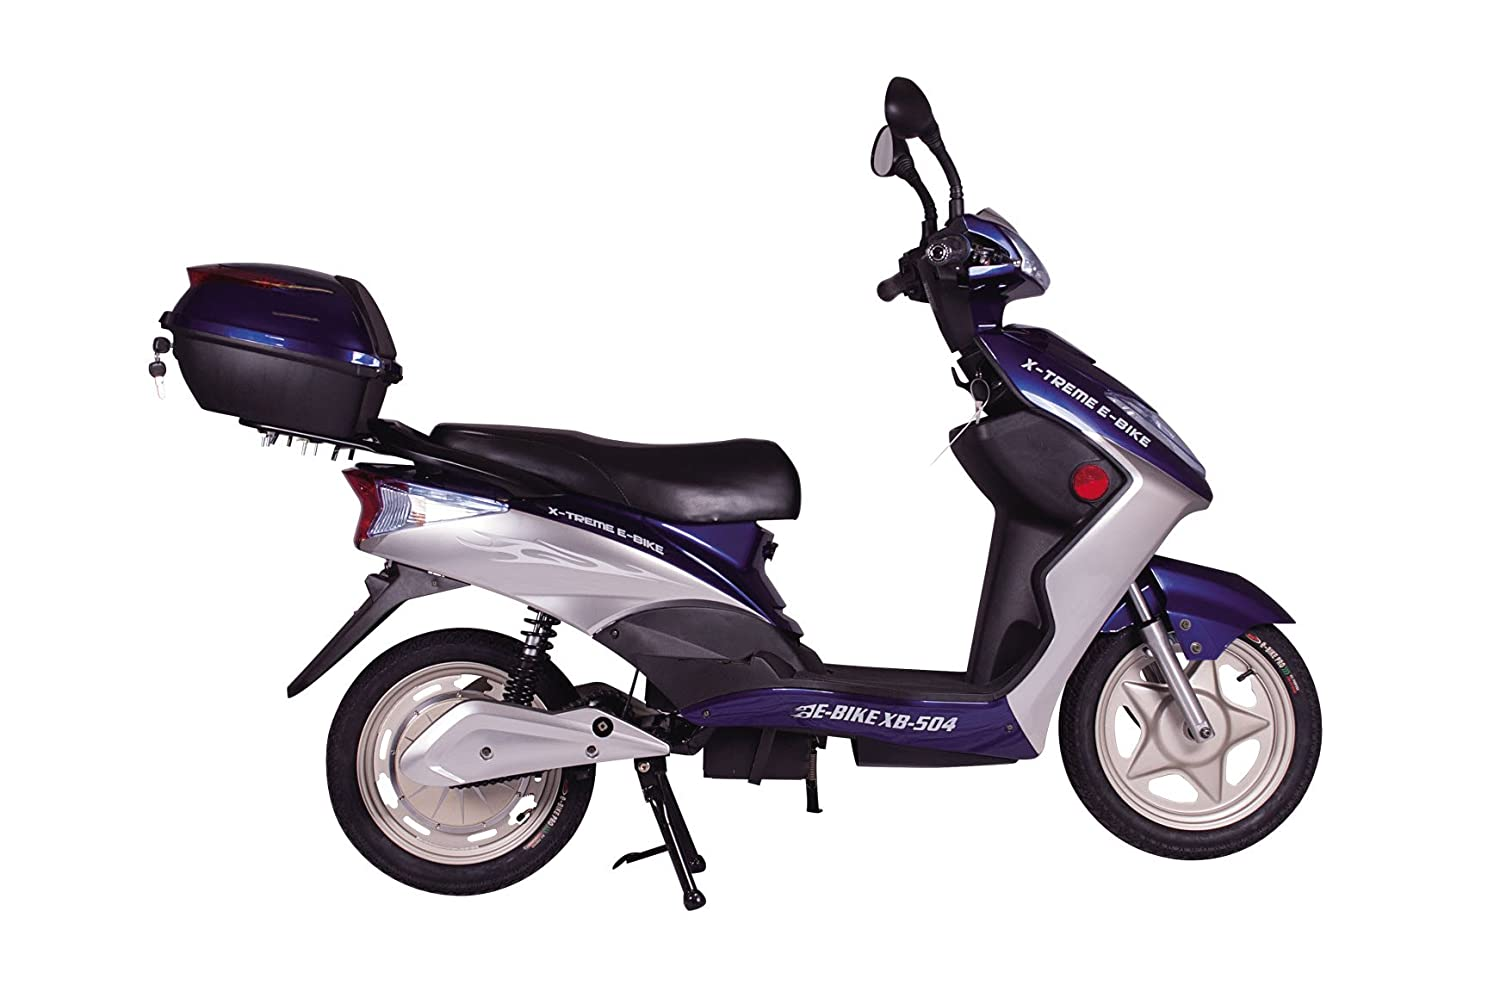 Amazon.com : X-Treme Scooters XB-504 Electric Bicycle44; Blue : Sports &  Outdoors